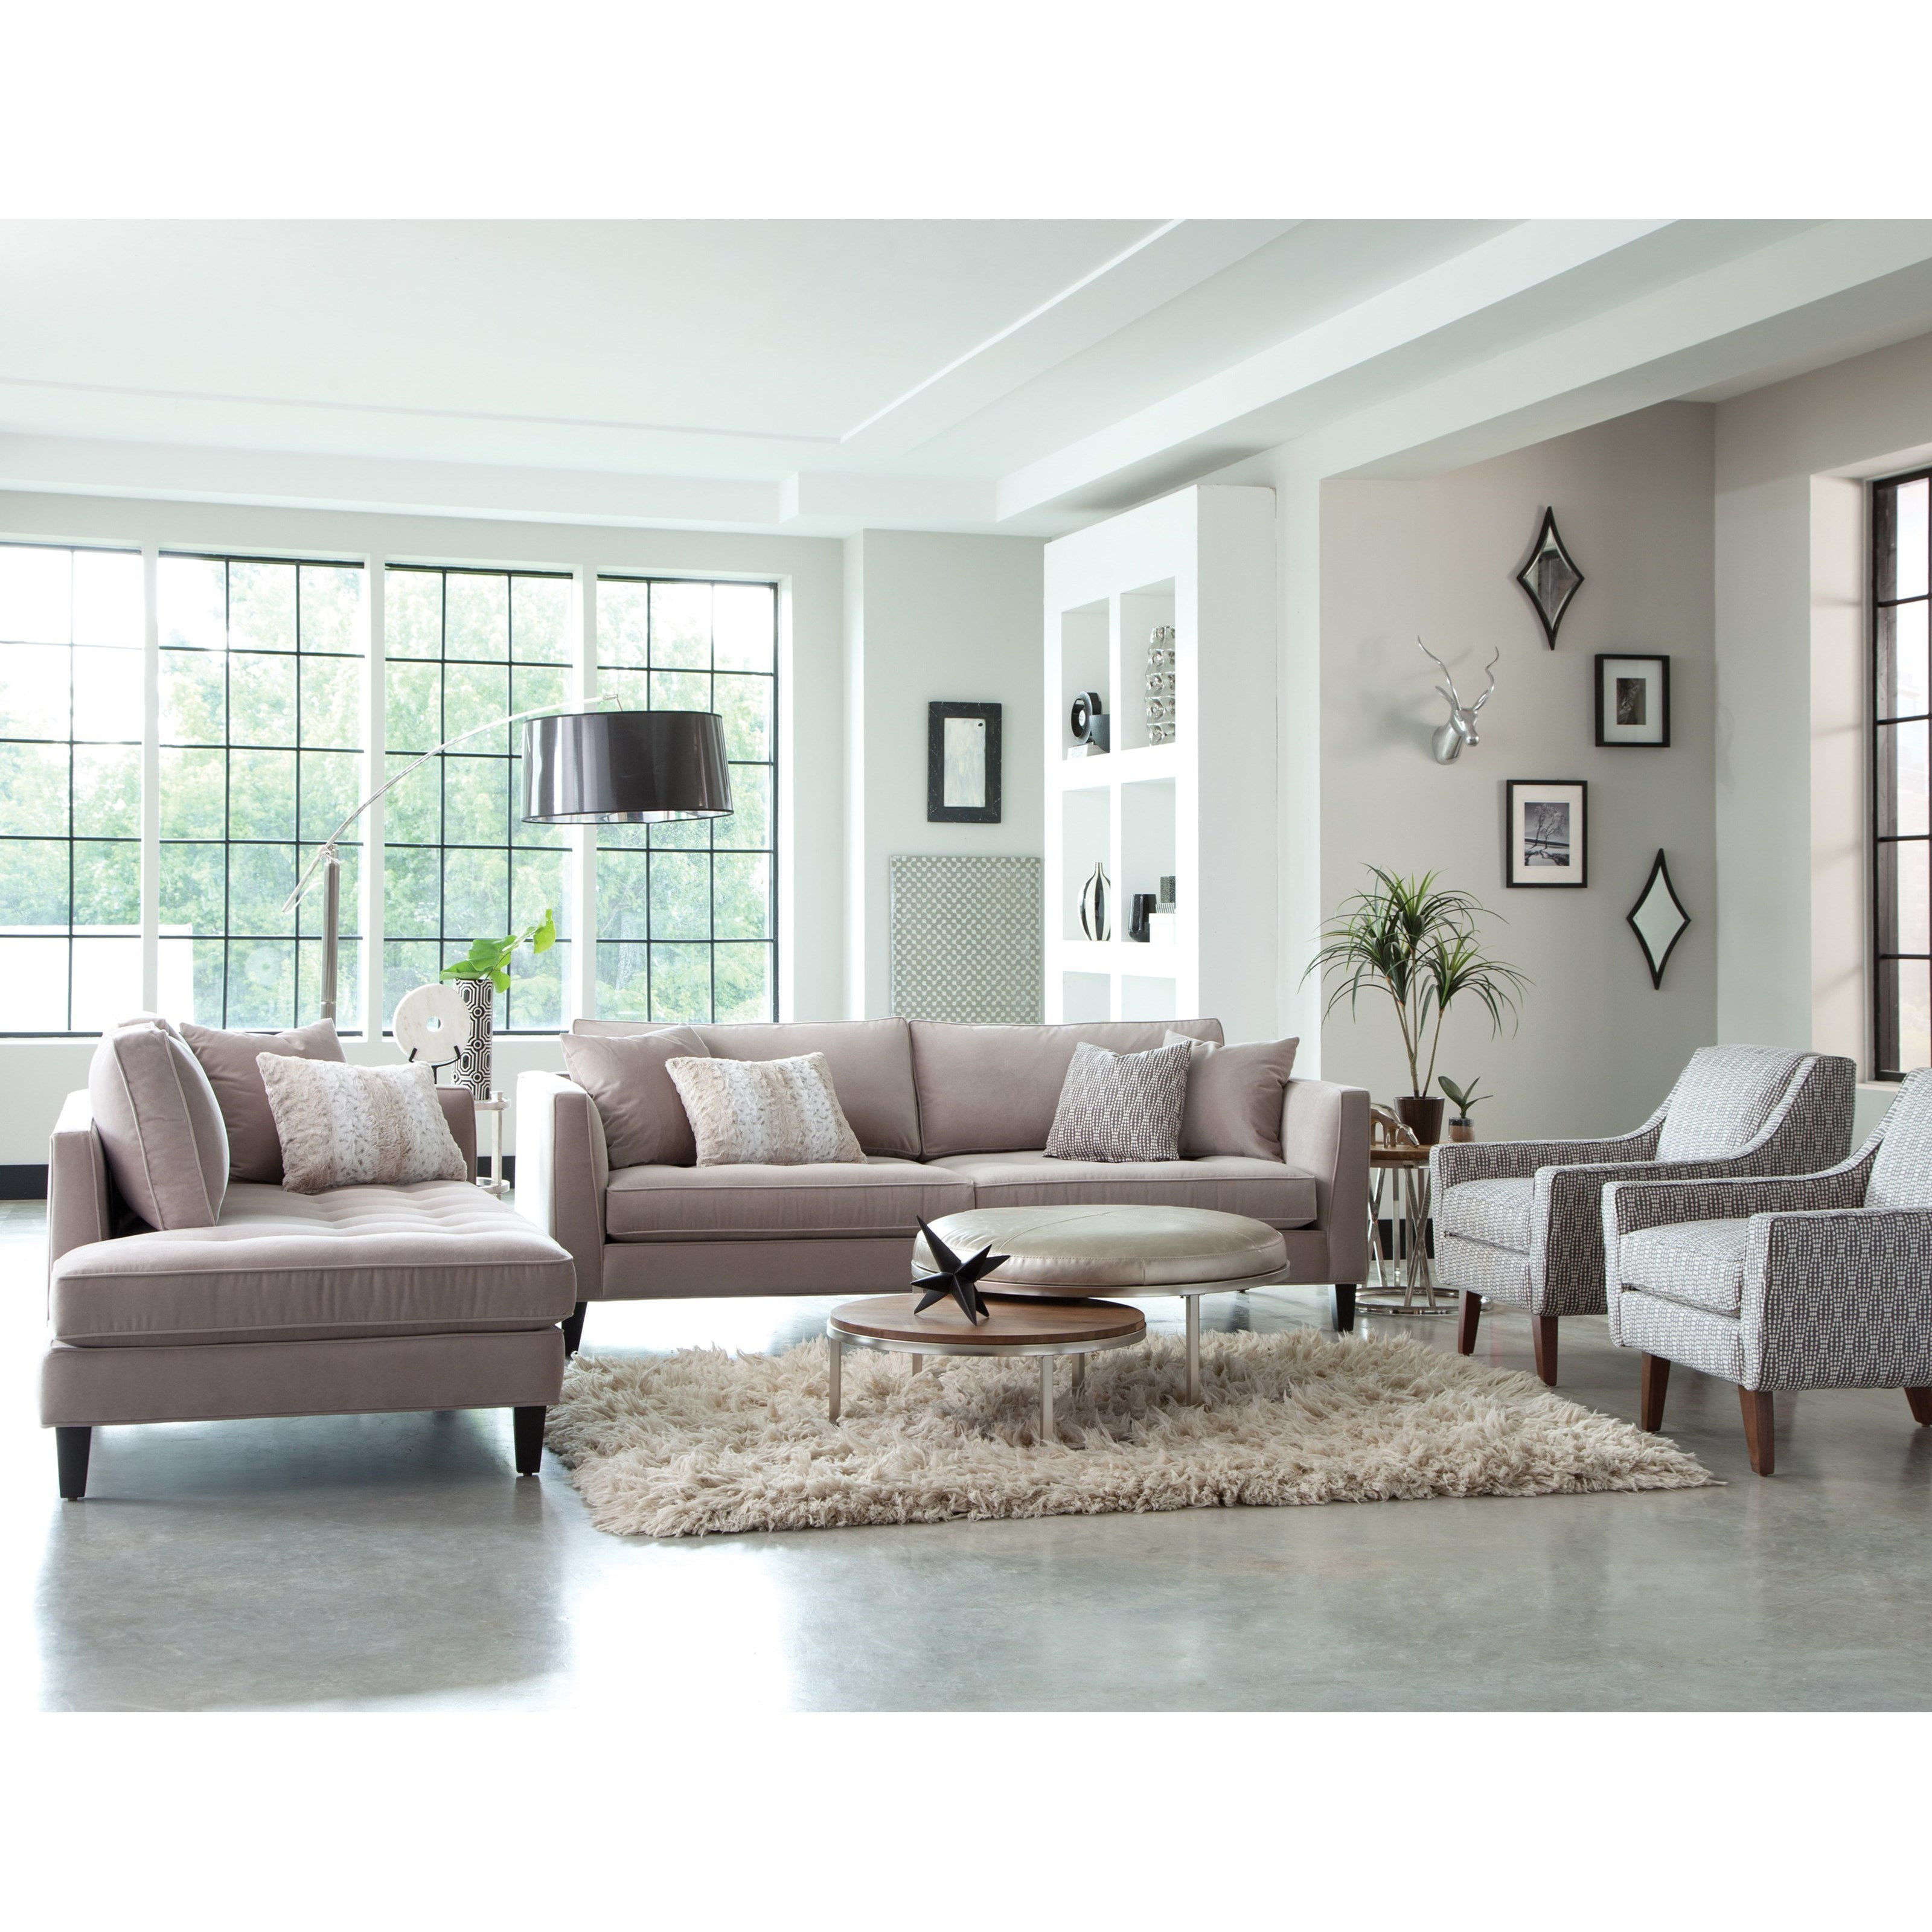 Living Room Furniture St Louis: Jonathan Louis Calista Modern Estate Sofa With Tufted Seat